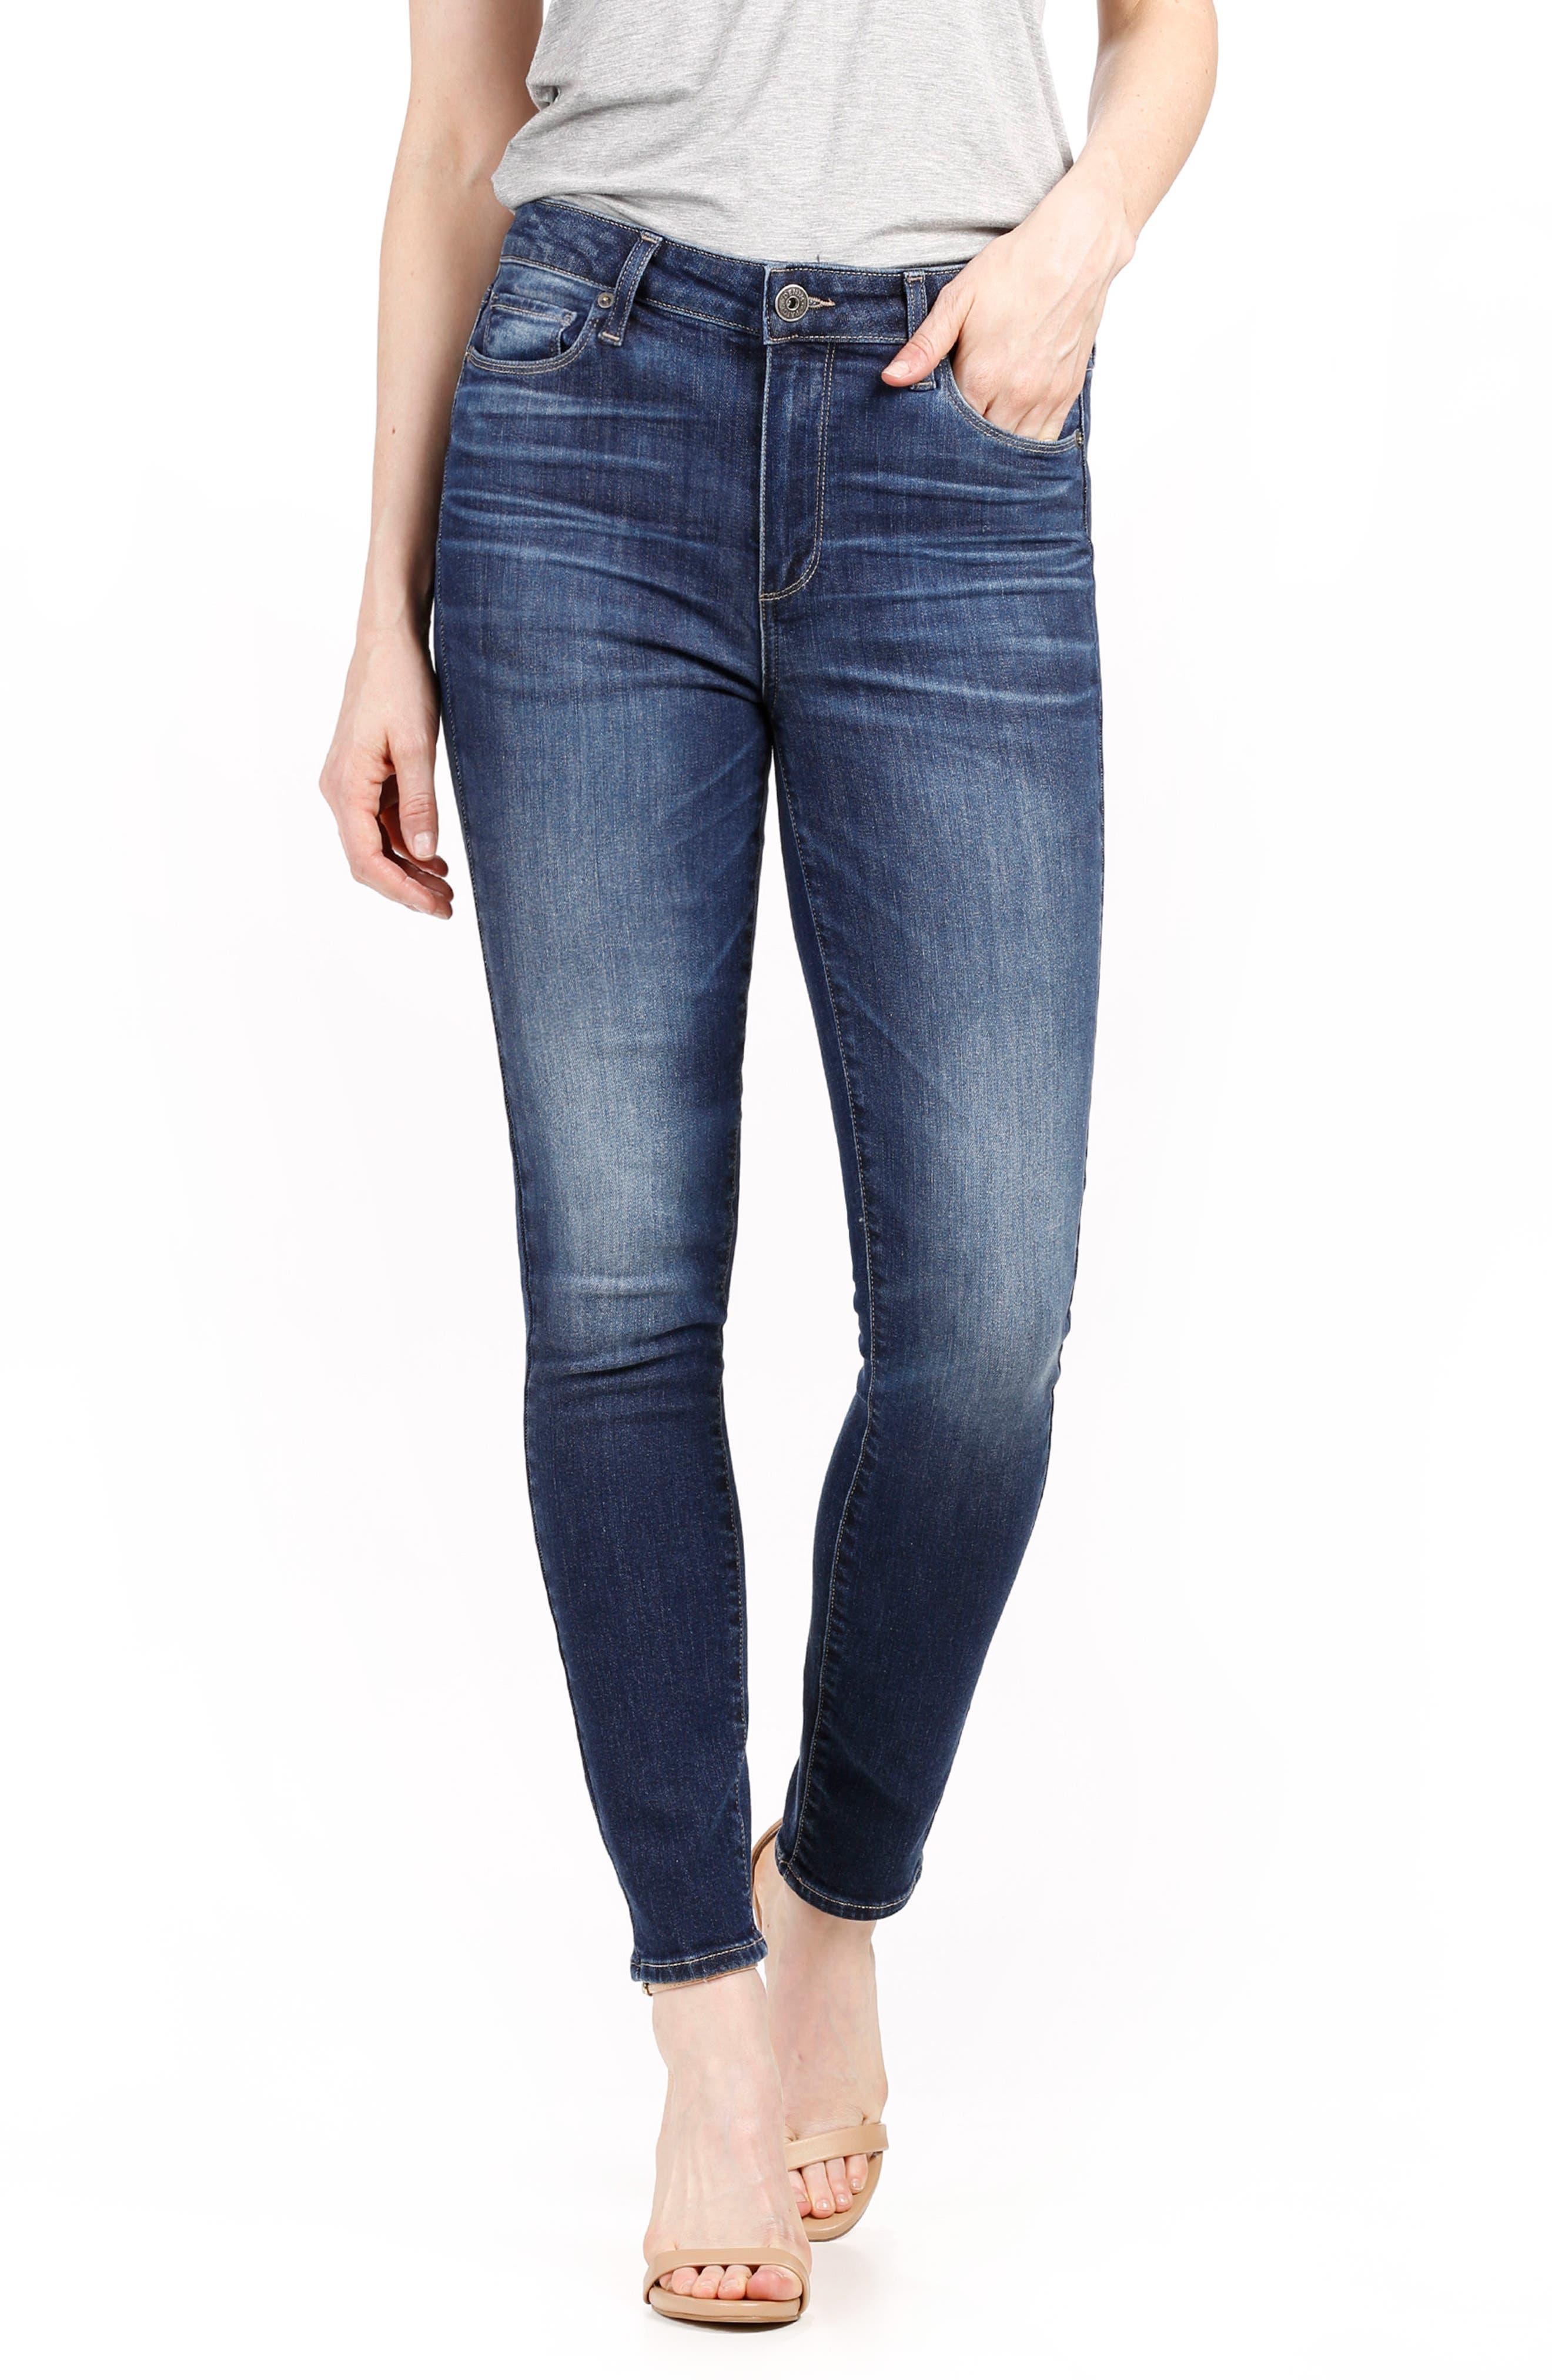 Hoxton High Waist Ankle Skinny Jeans,                             Main thumbnail 1, color,                             400